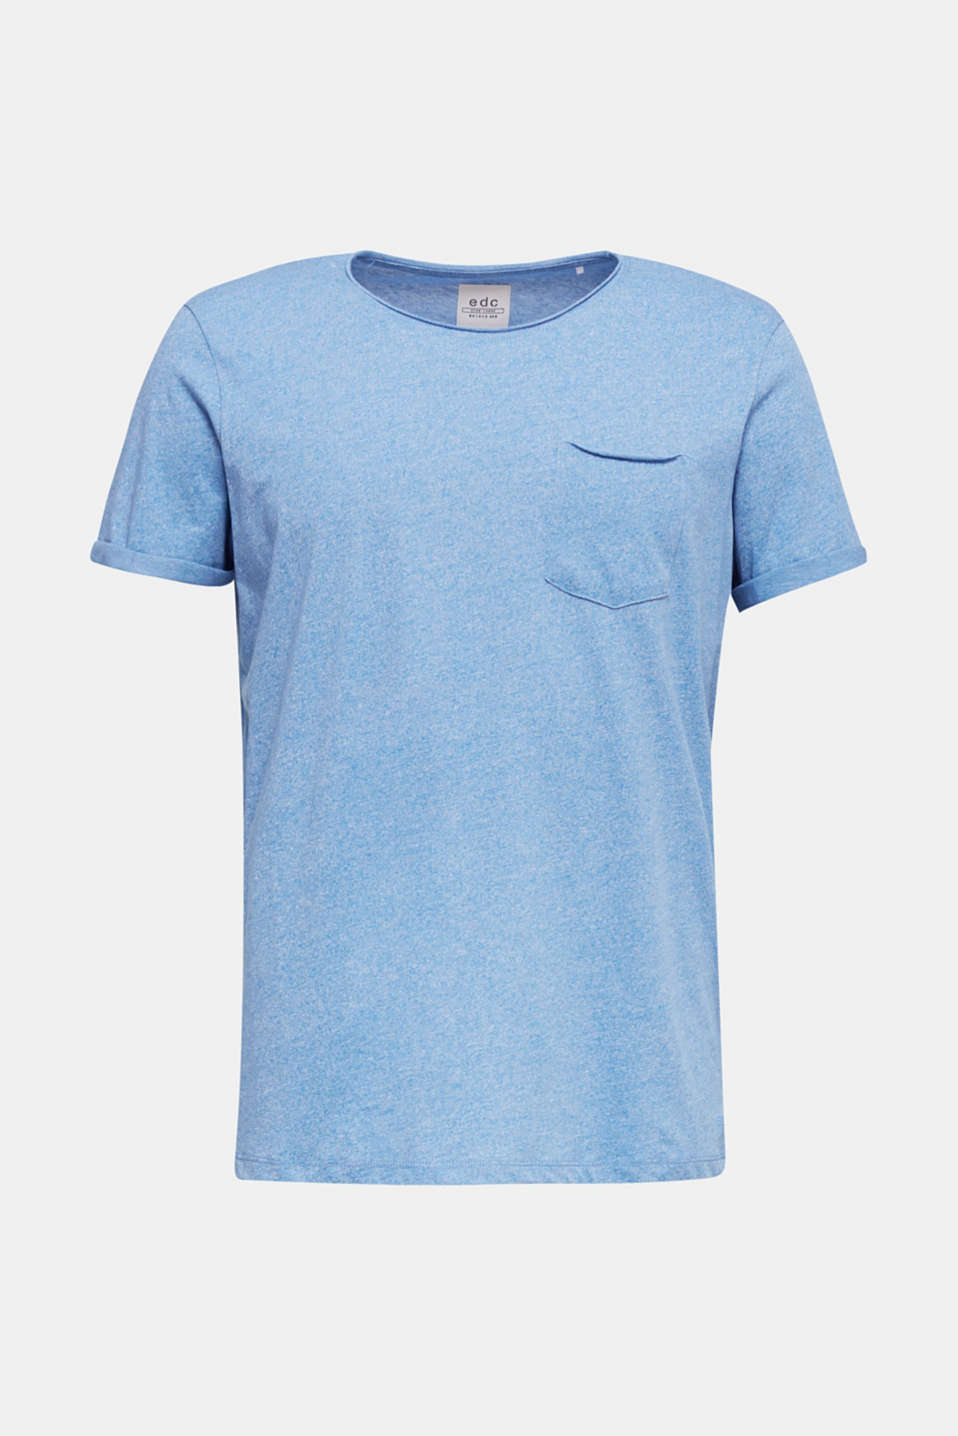 Jersey T-shirt in a casual look, BLUE 5, detail image number 6